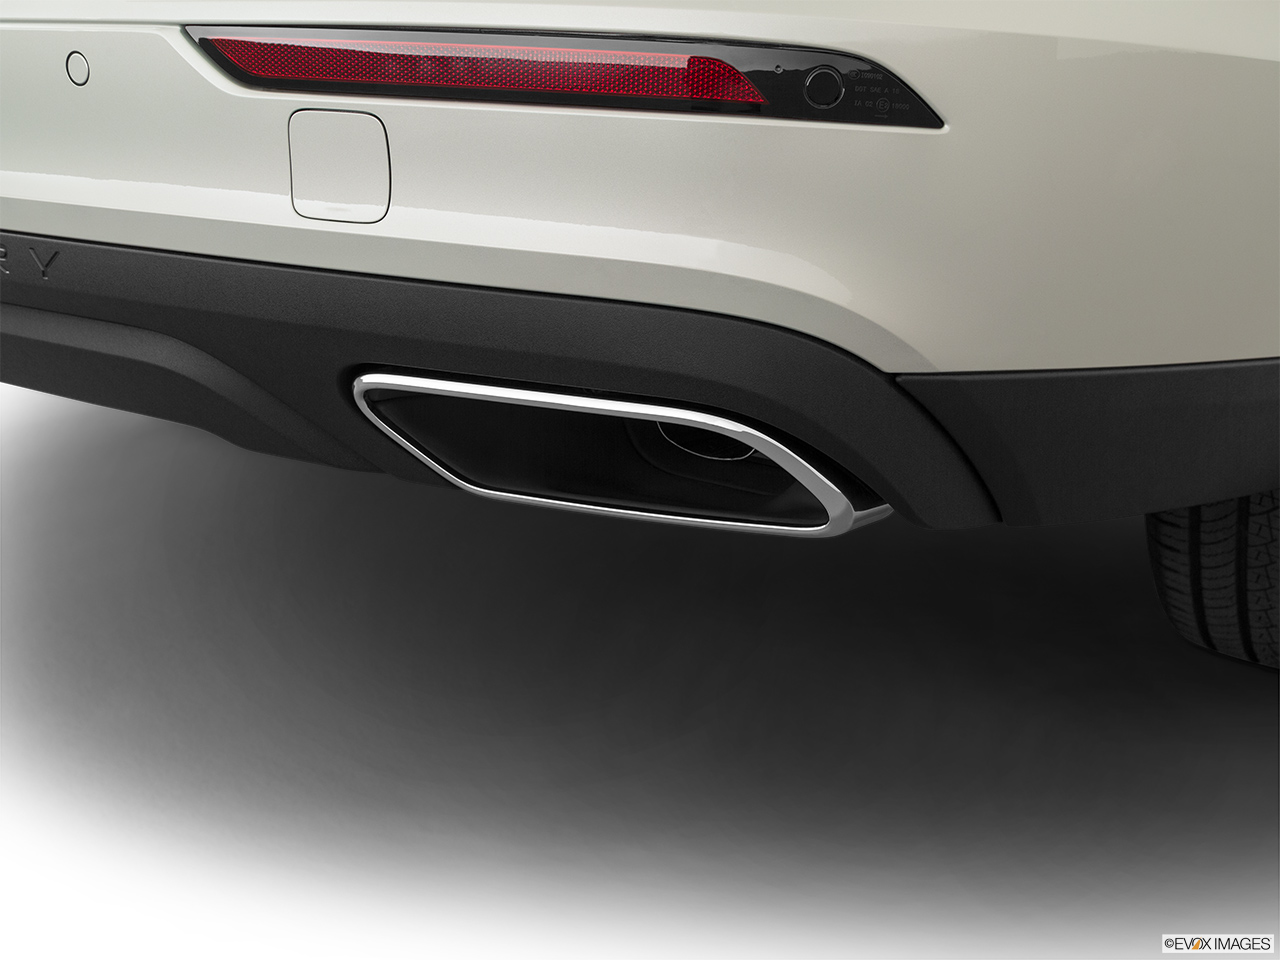 2020 Volvo V60 Cross Country T5 AWD Chrome tip exhaust pipe.